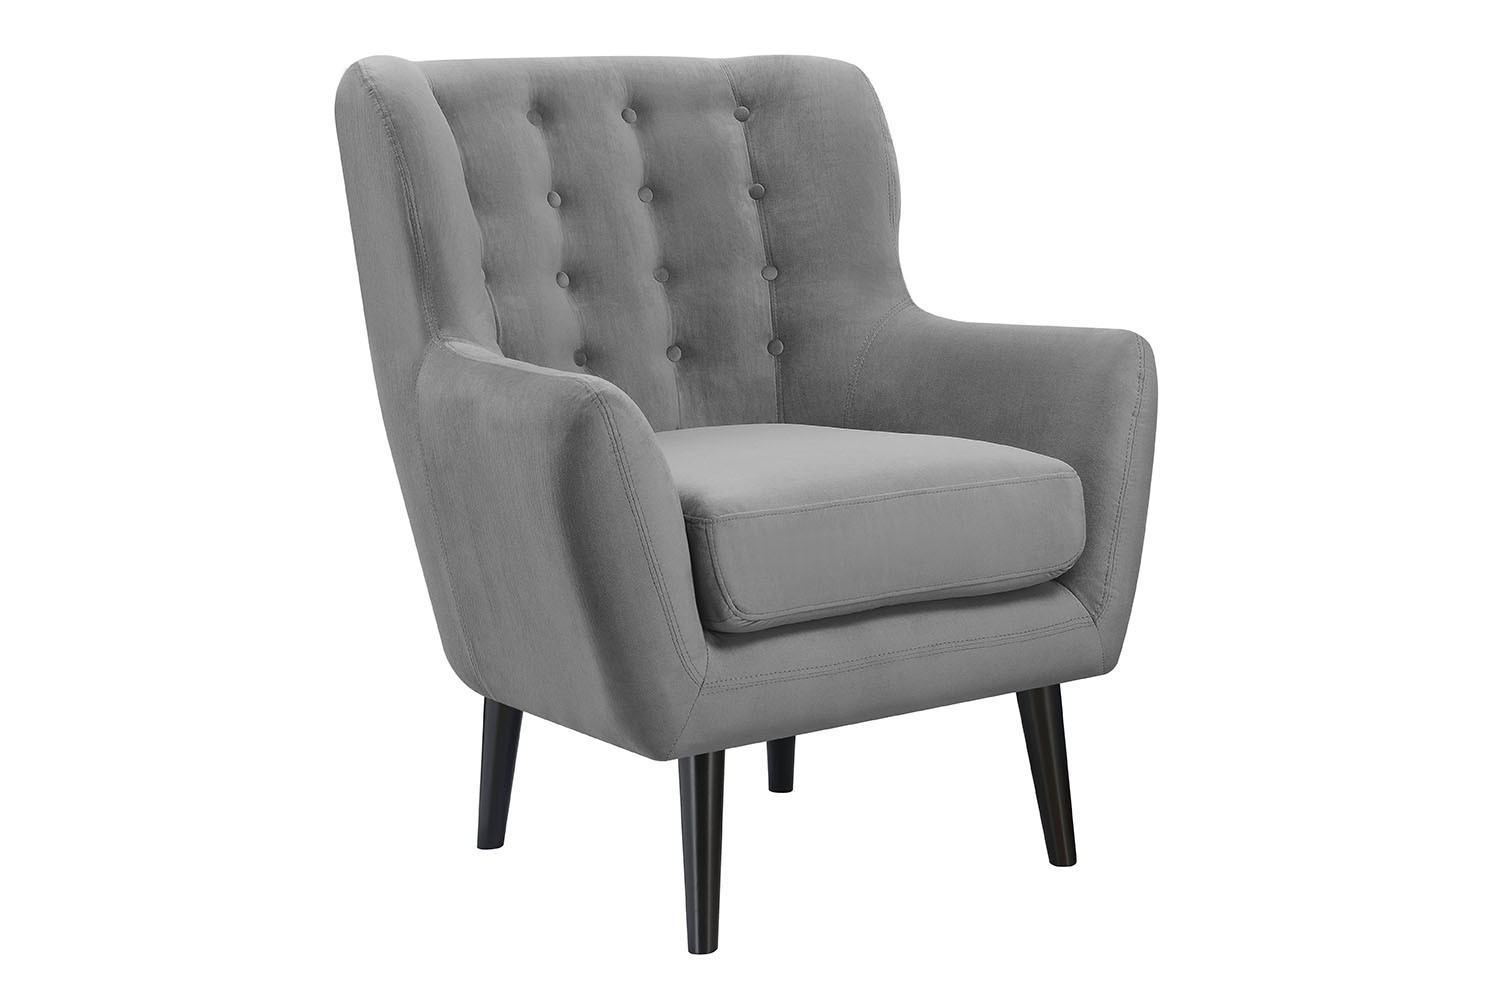 Lucy Gray Accent Chair | New Year's Sale On 500+ Products Throughout Lucy Grey Sofa Chairs (Image 6 of 20)